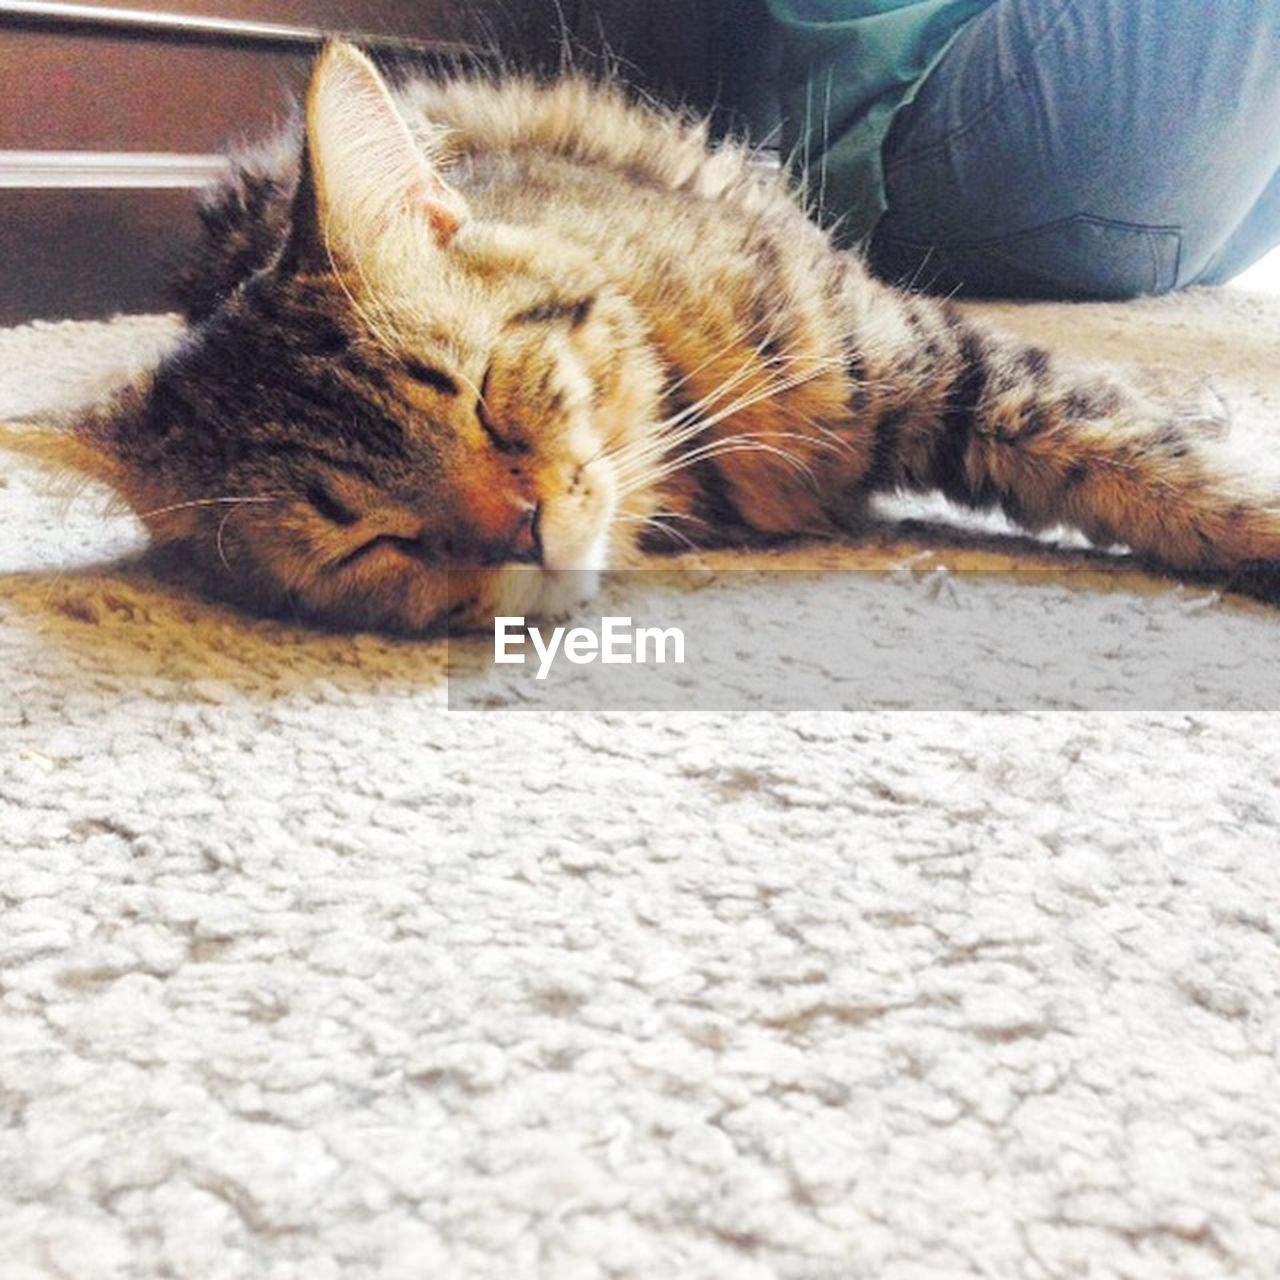 domestic cat, animal themes, pets, domestic animals, one animal, feline, mammal, relaxation, lying down, indoors, day, no people, close-up